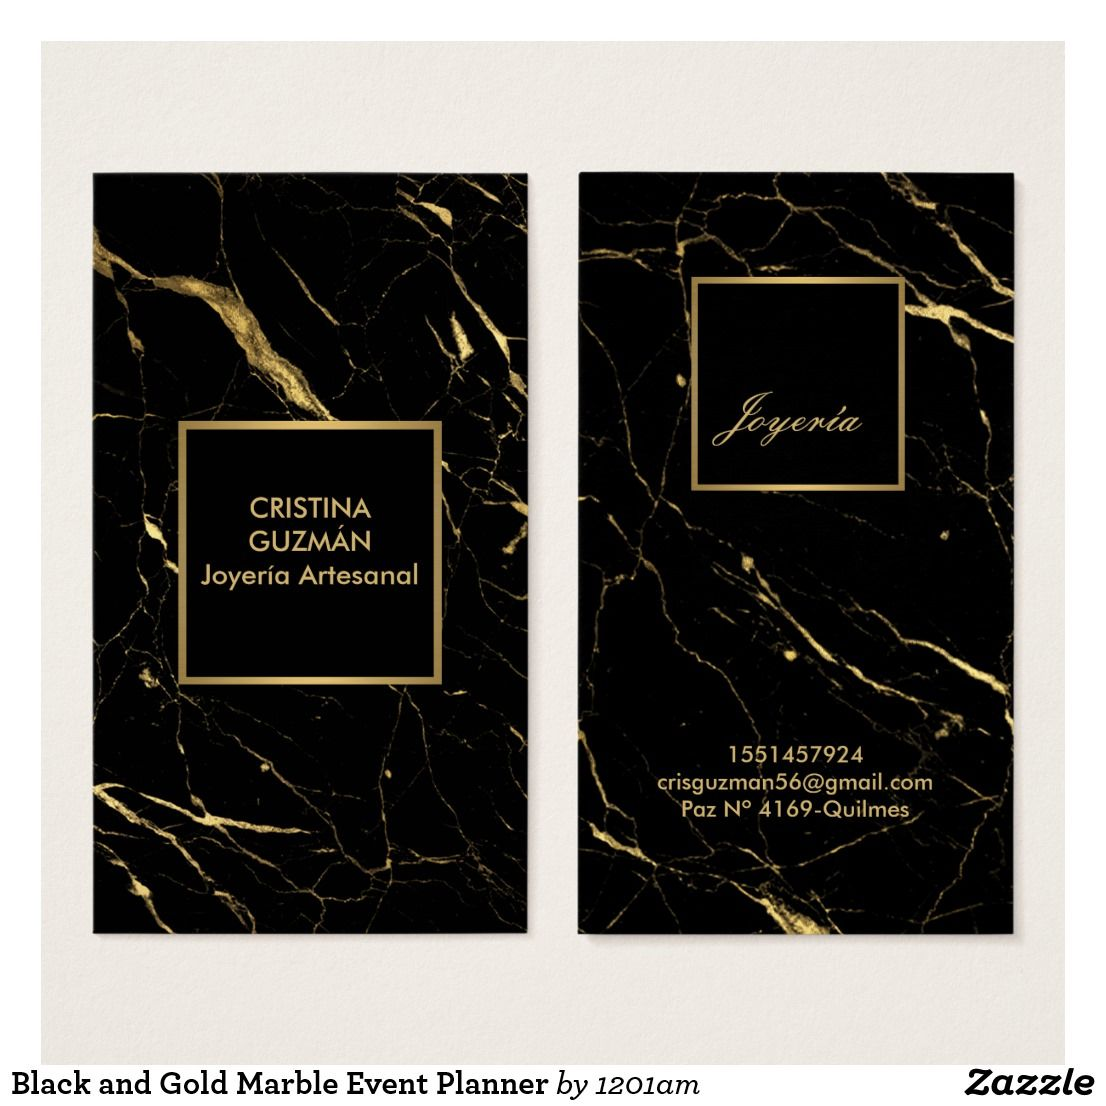 Black And Gold Marble Event Planner Business Card Zazzle Com In 2021 Event Planner Business Card Vip Card Design Black And Gold Marble